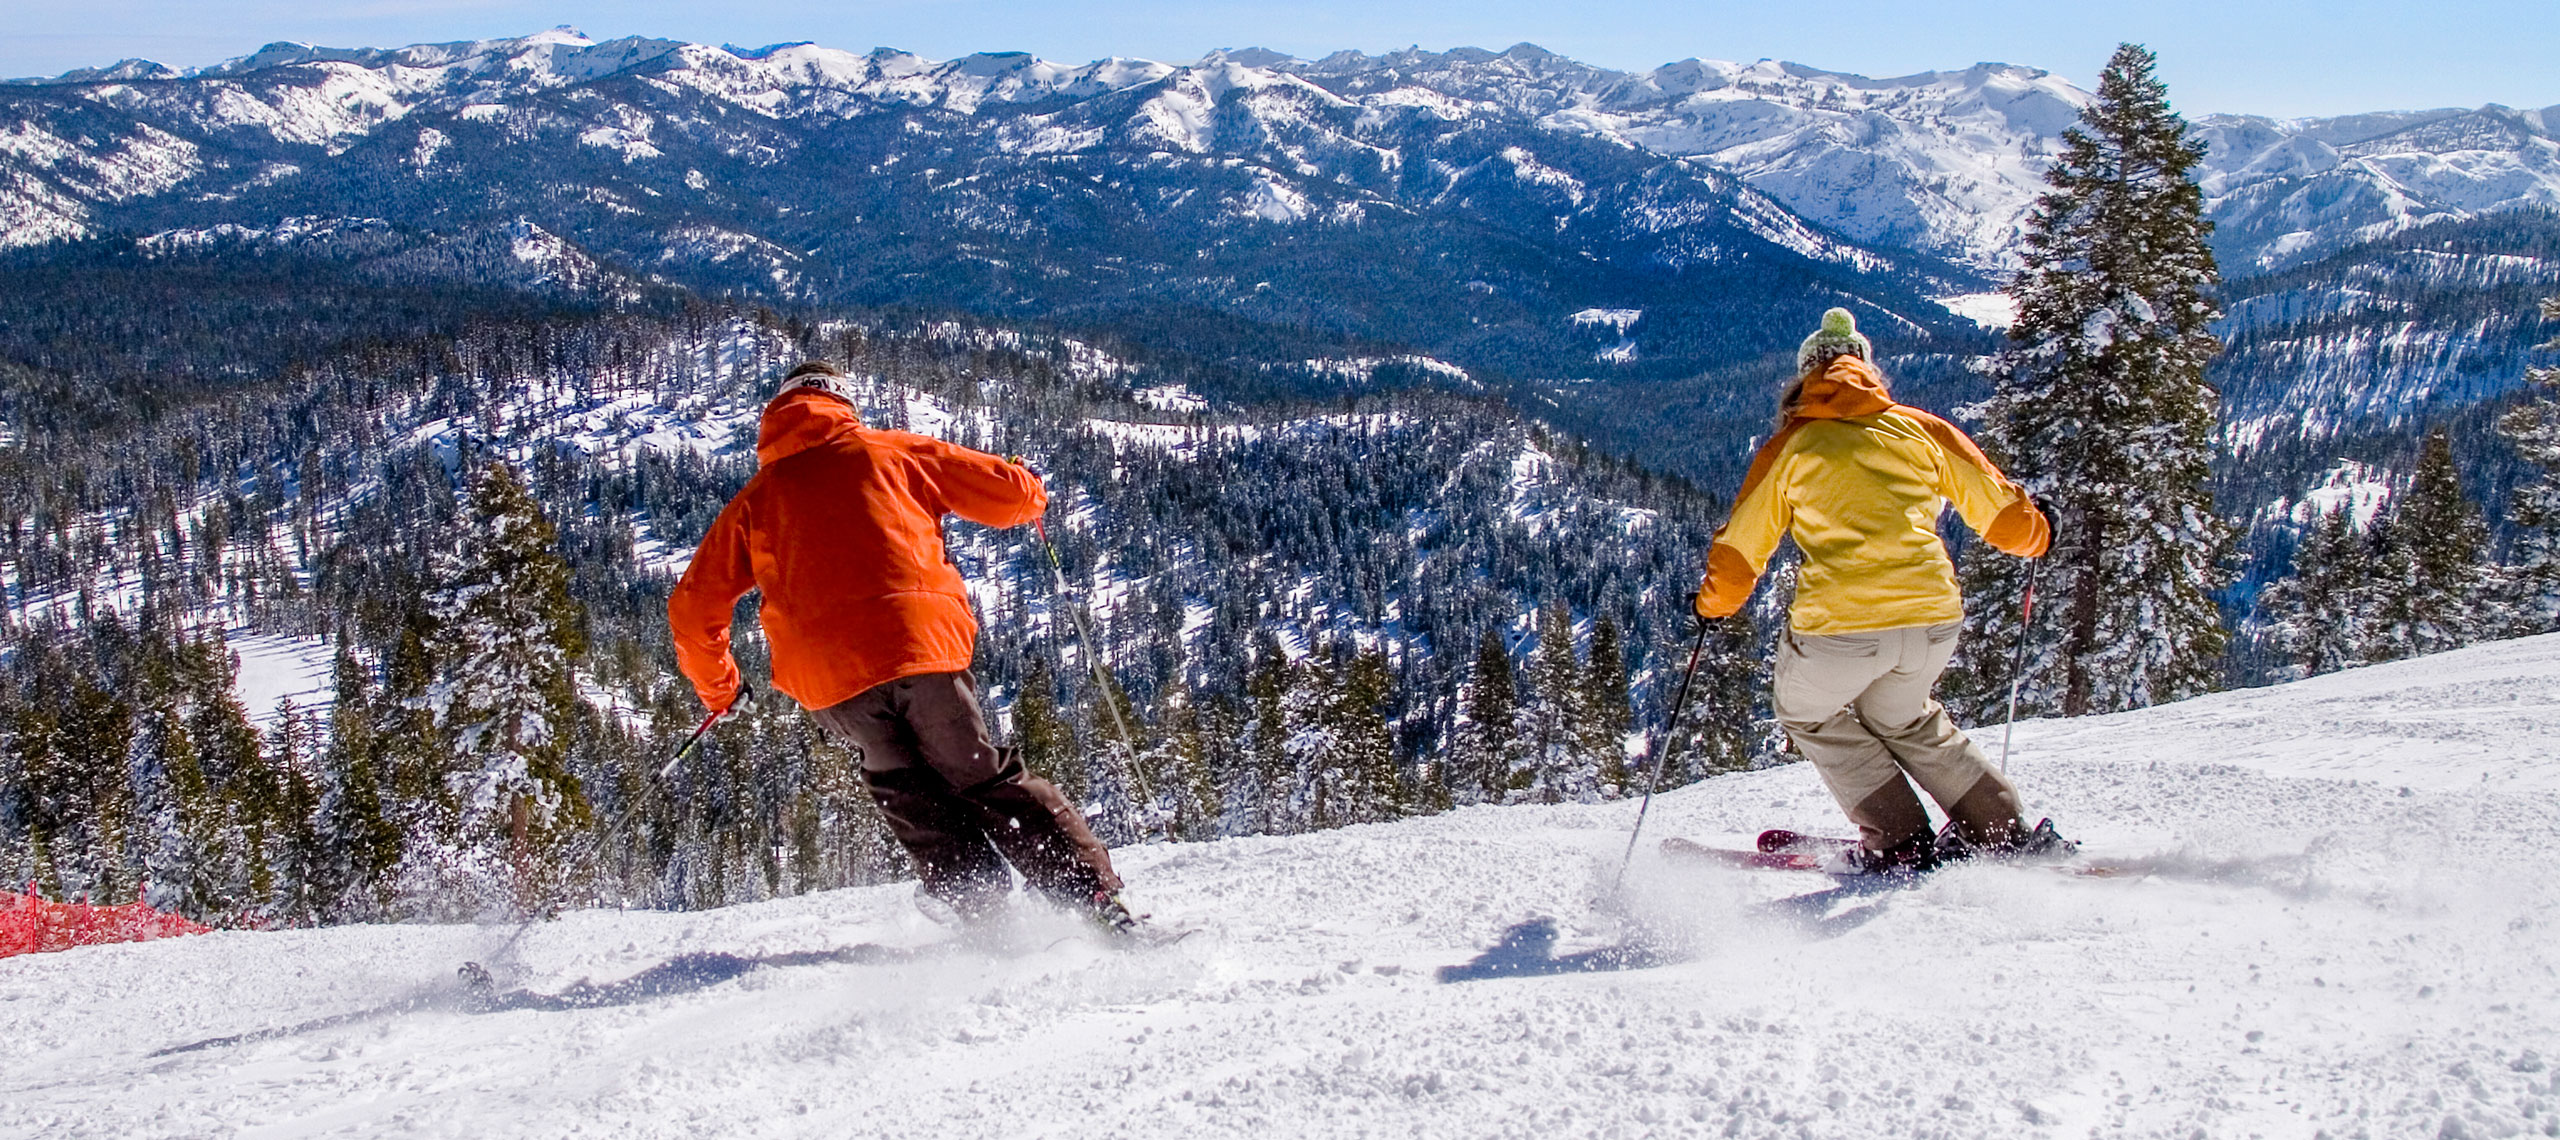 Ski Areas – Northstar California / Truckee, Ca